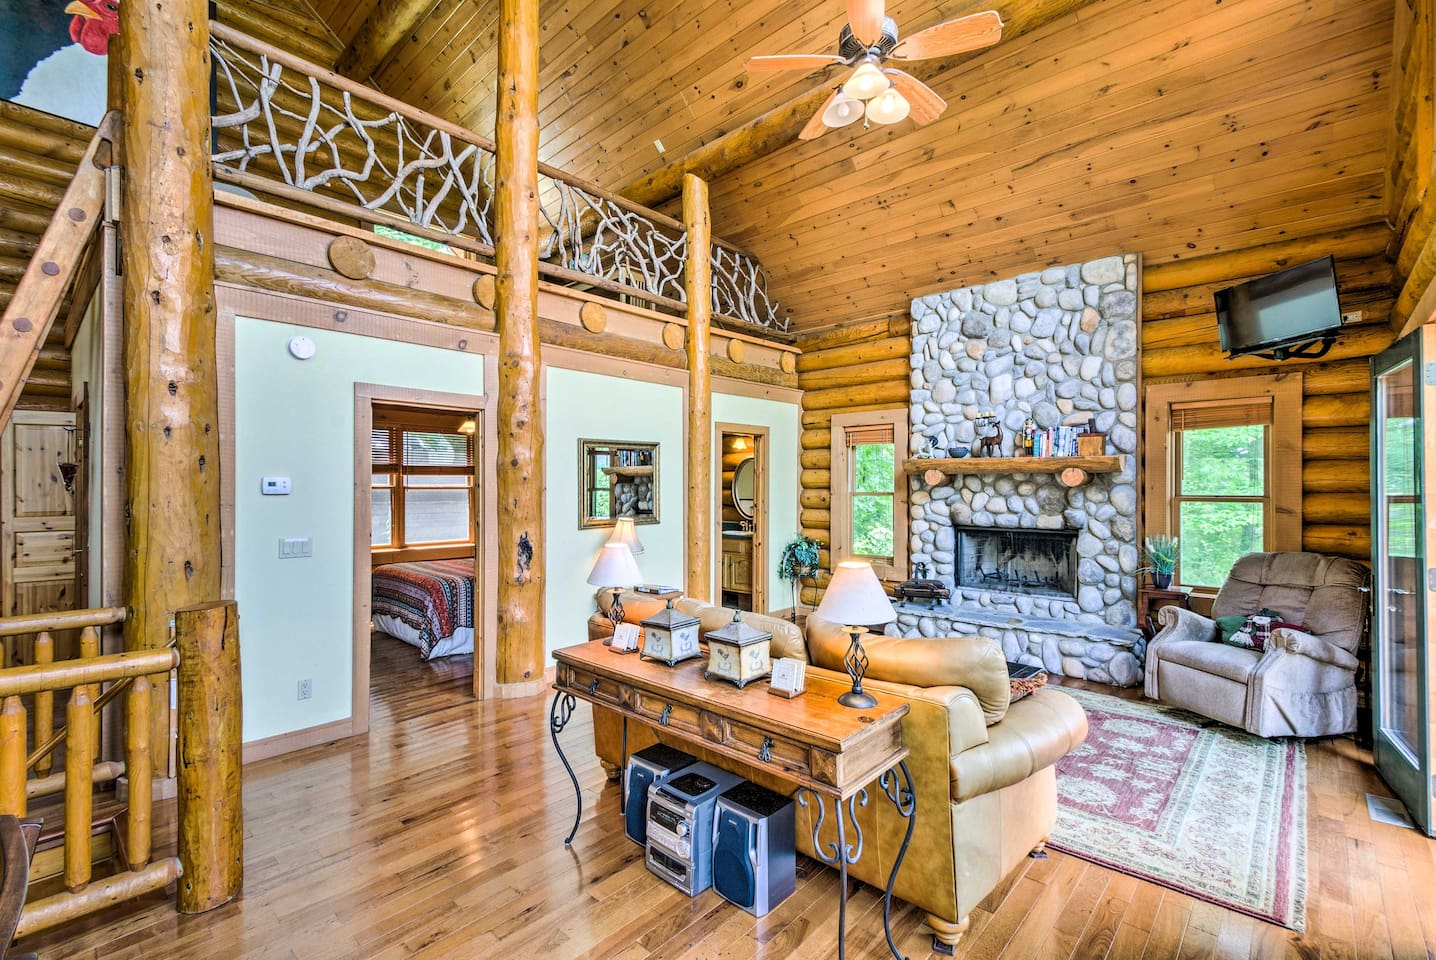 Book your Topton escape to this 4-bedroom, 2-bath vacation rental cabin!